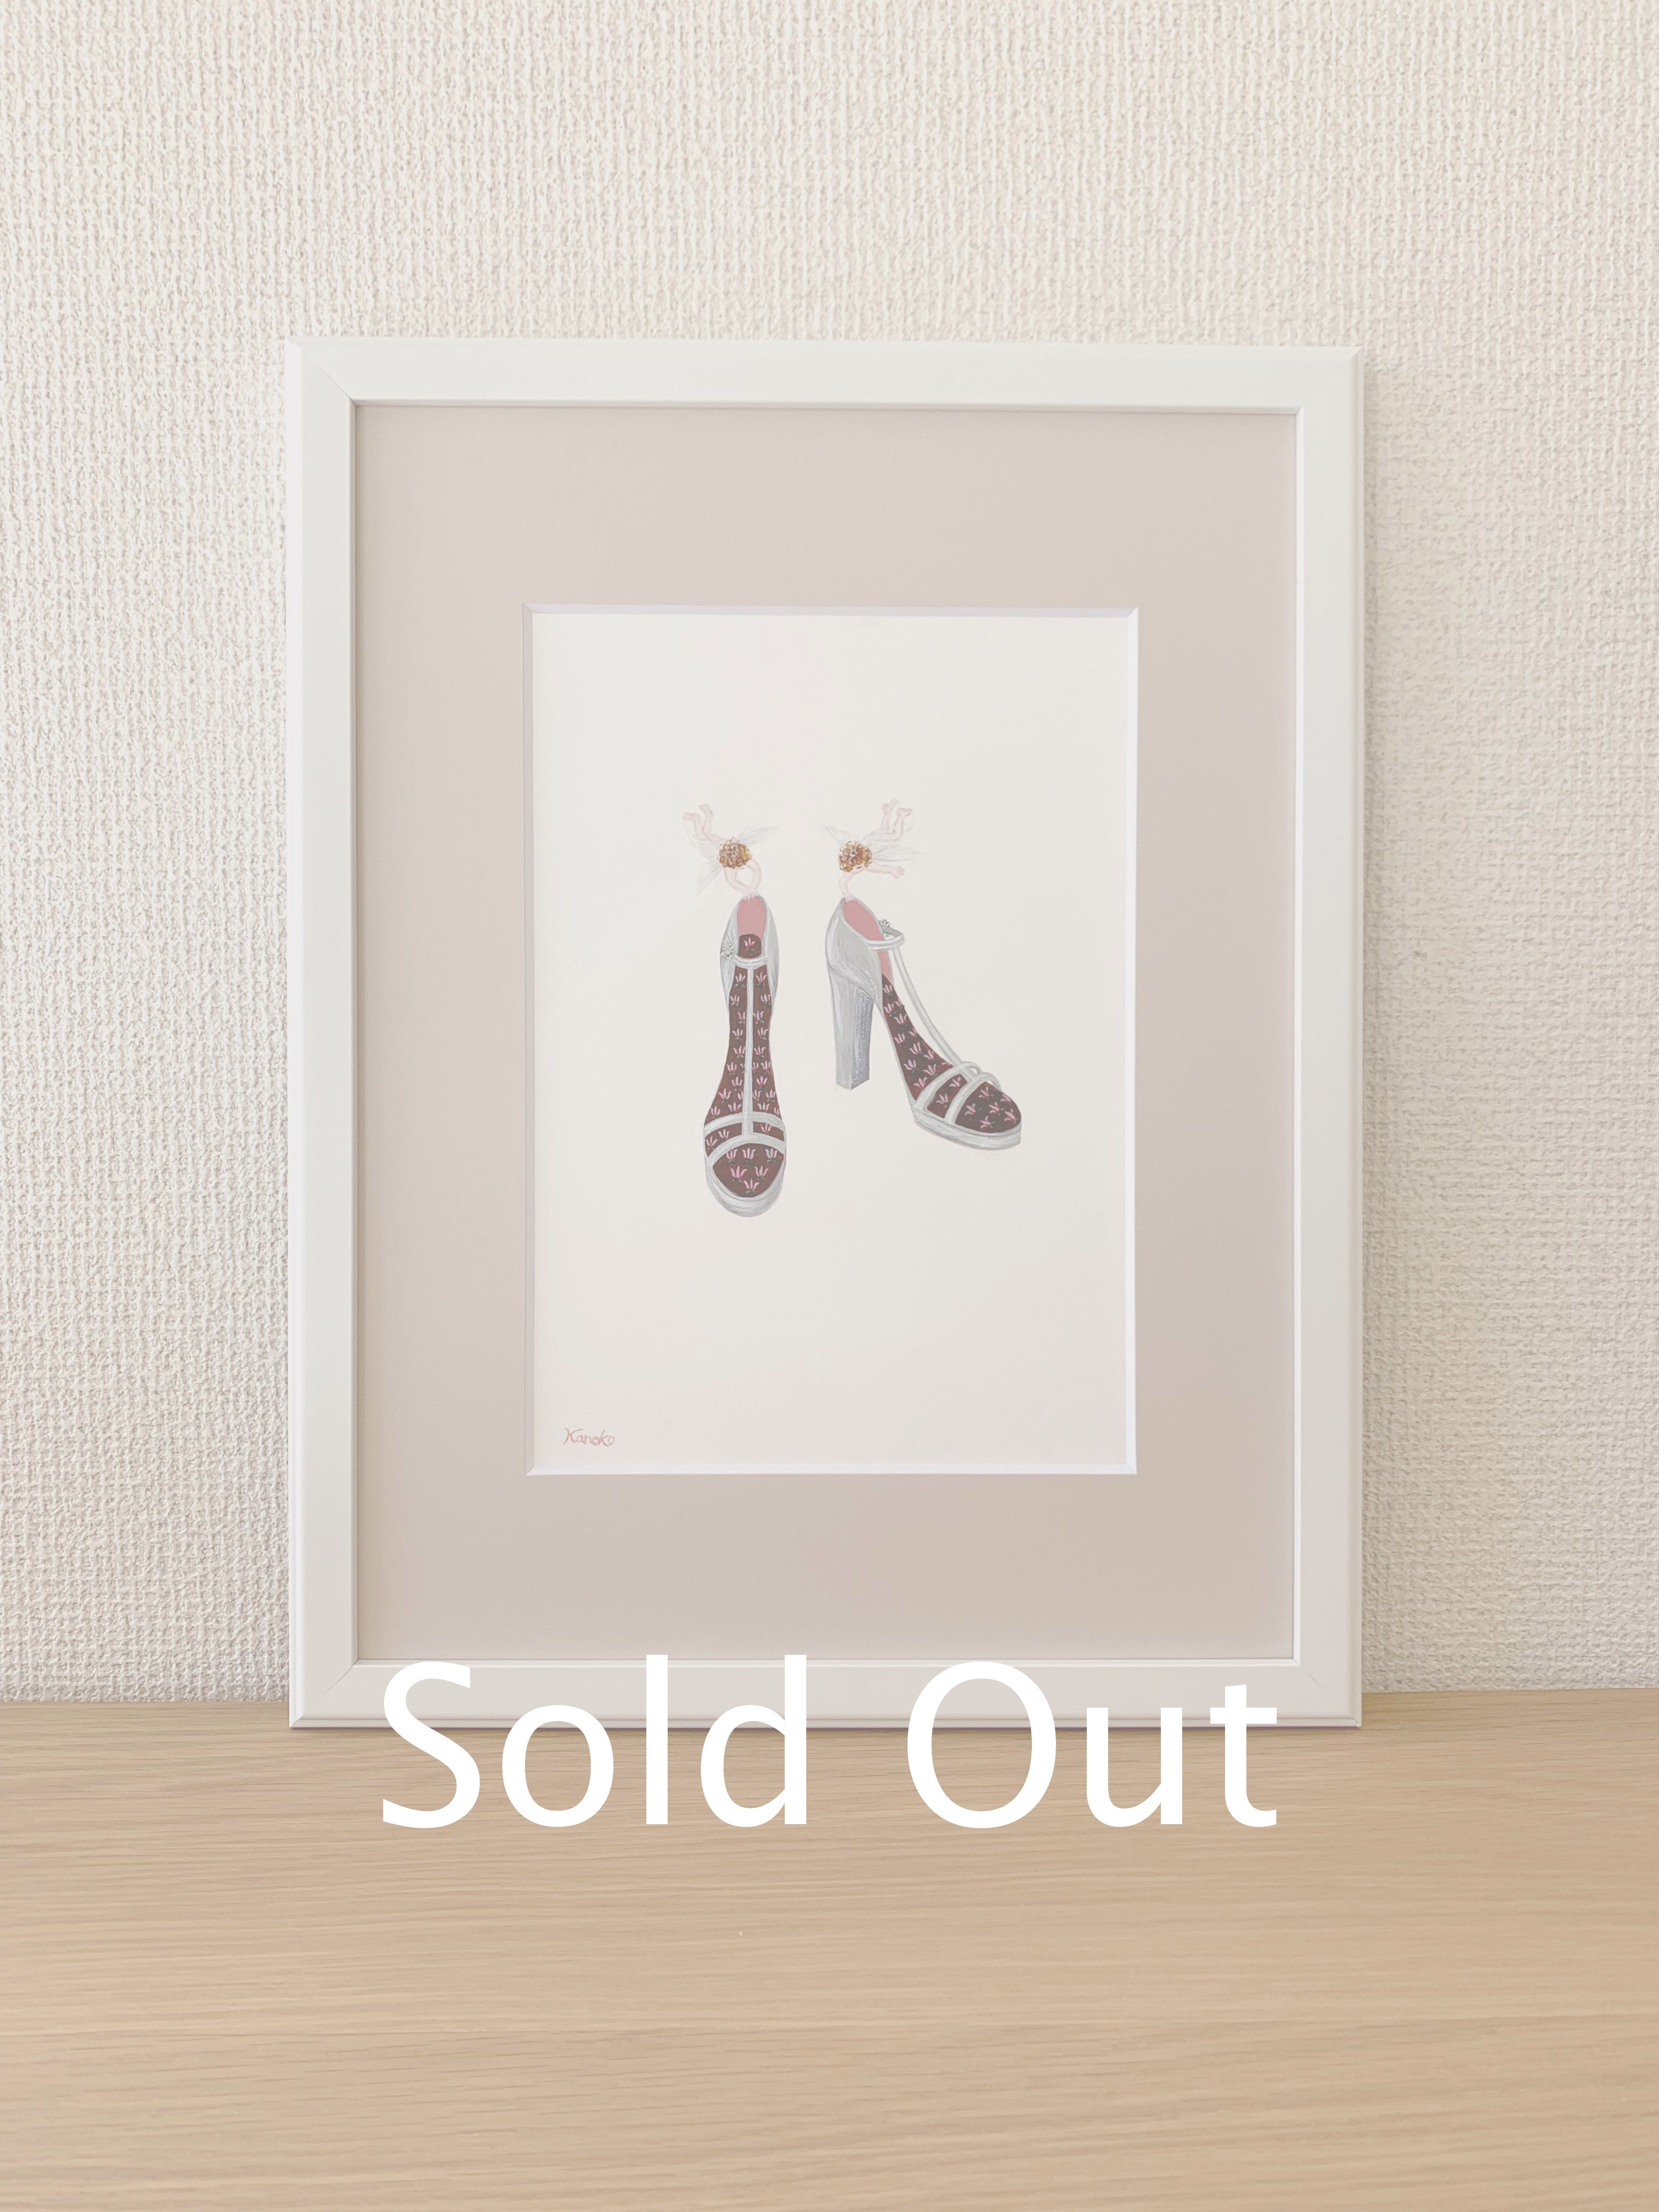 Myself sold out